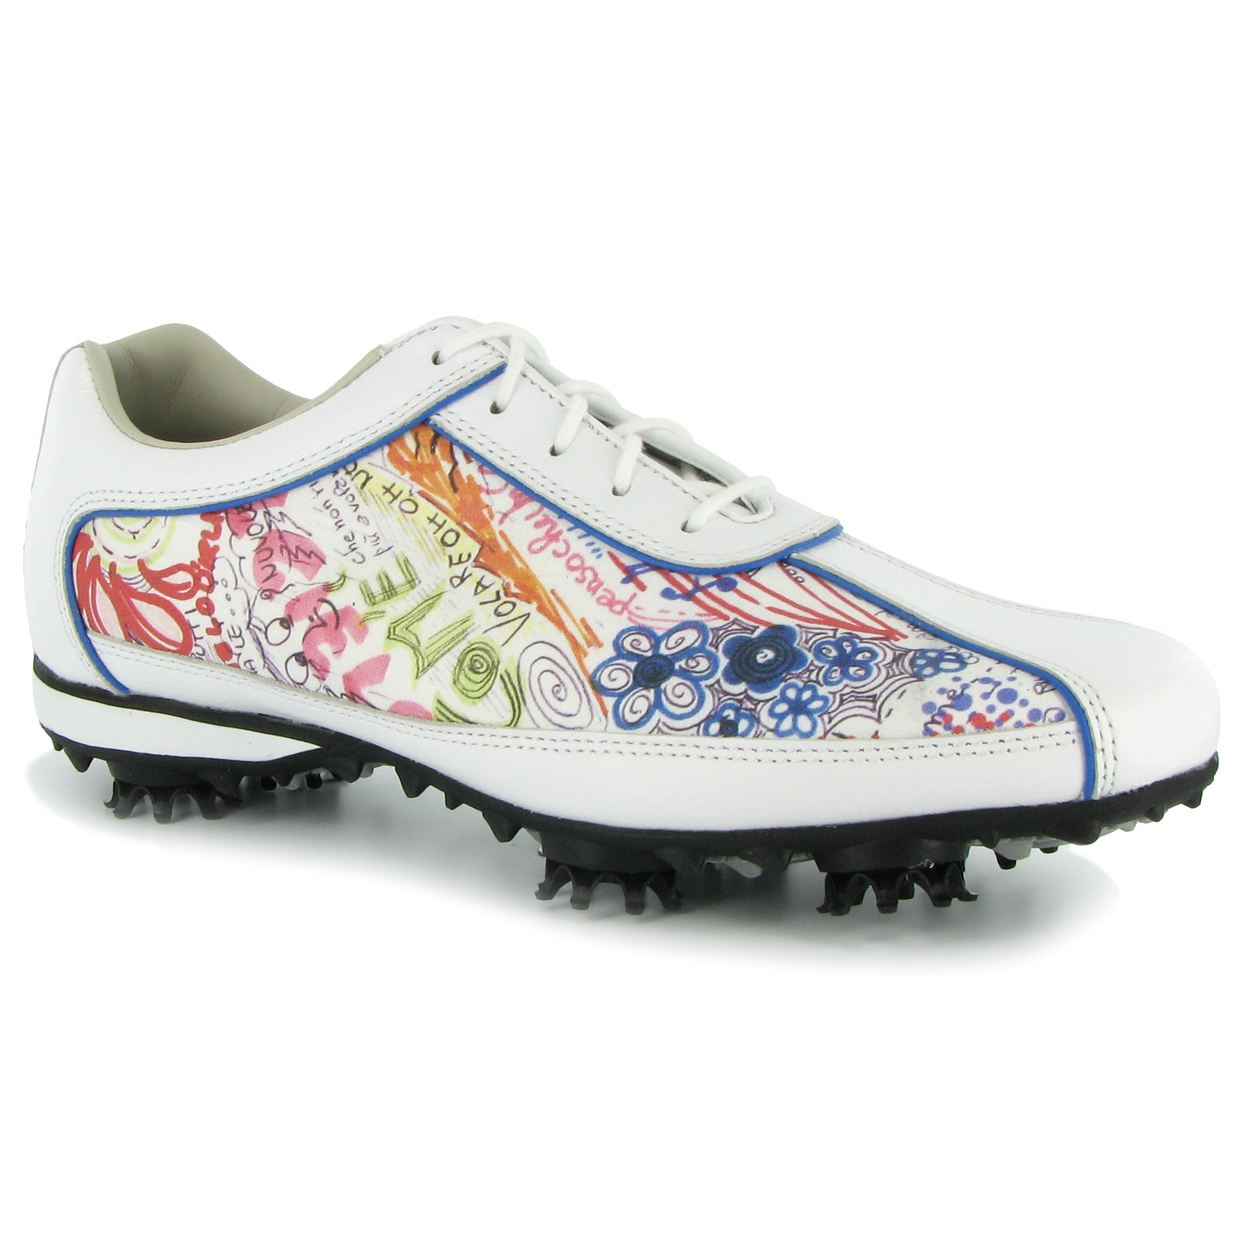 Mens Golf Shoes For Sale Images Casual Zapatos